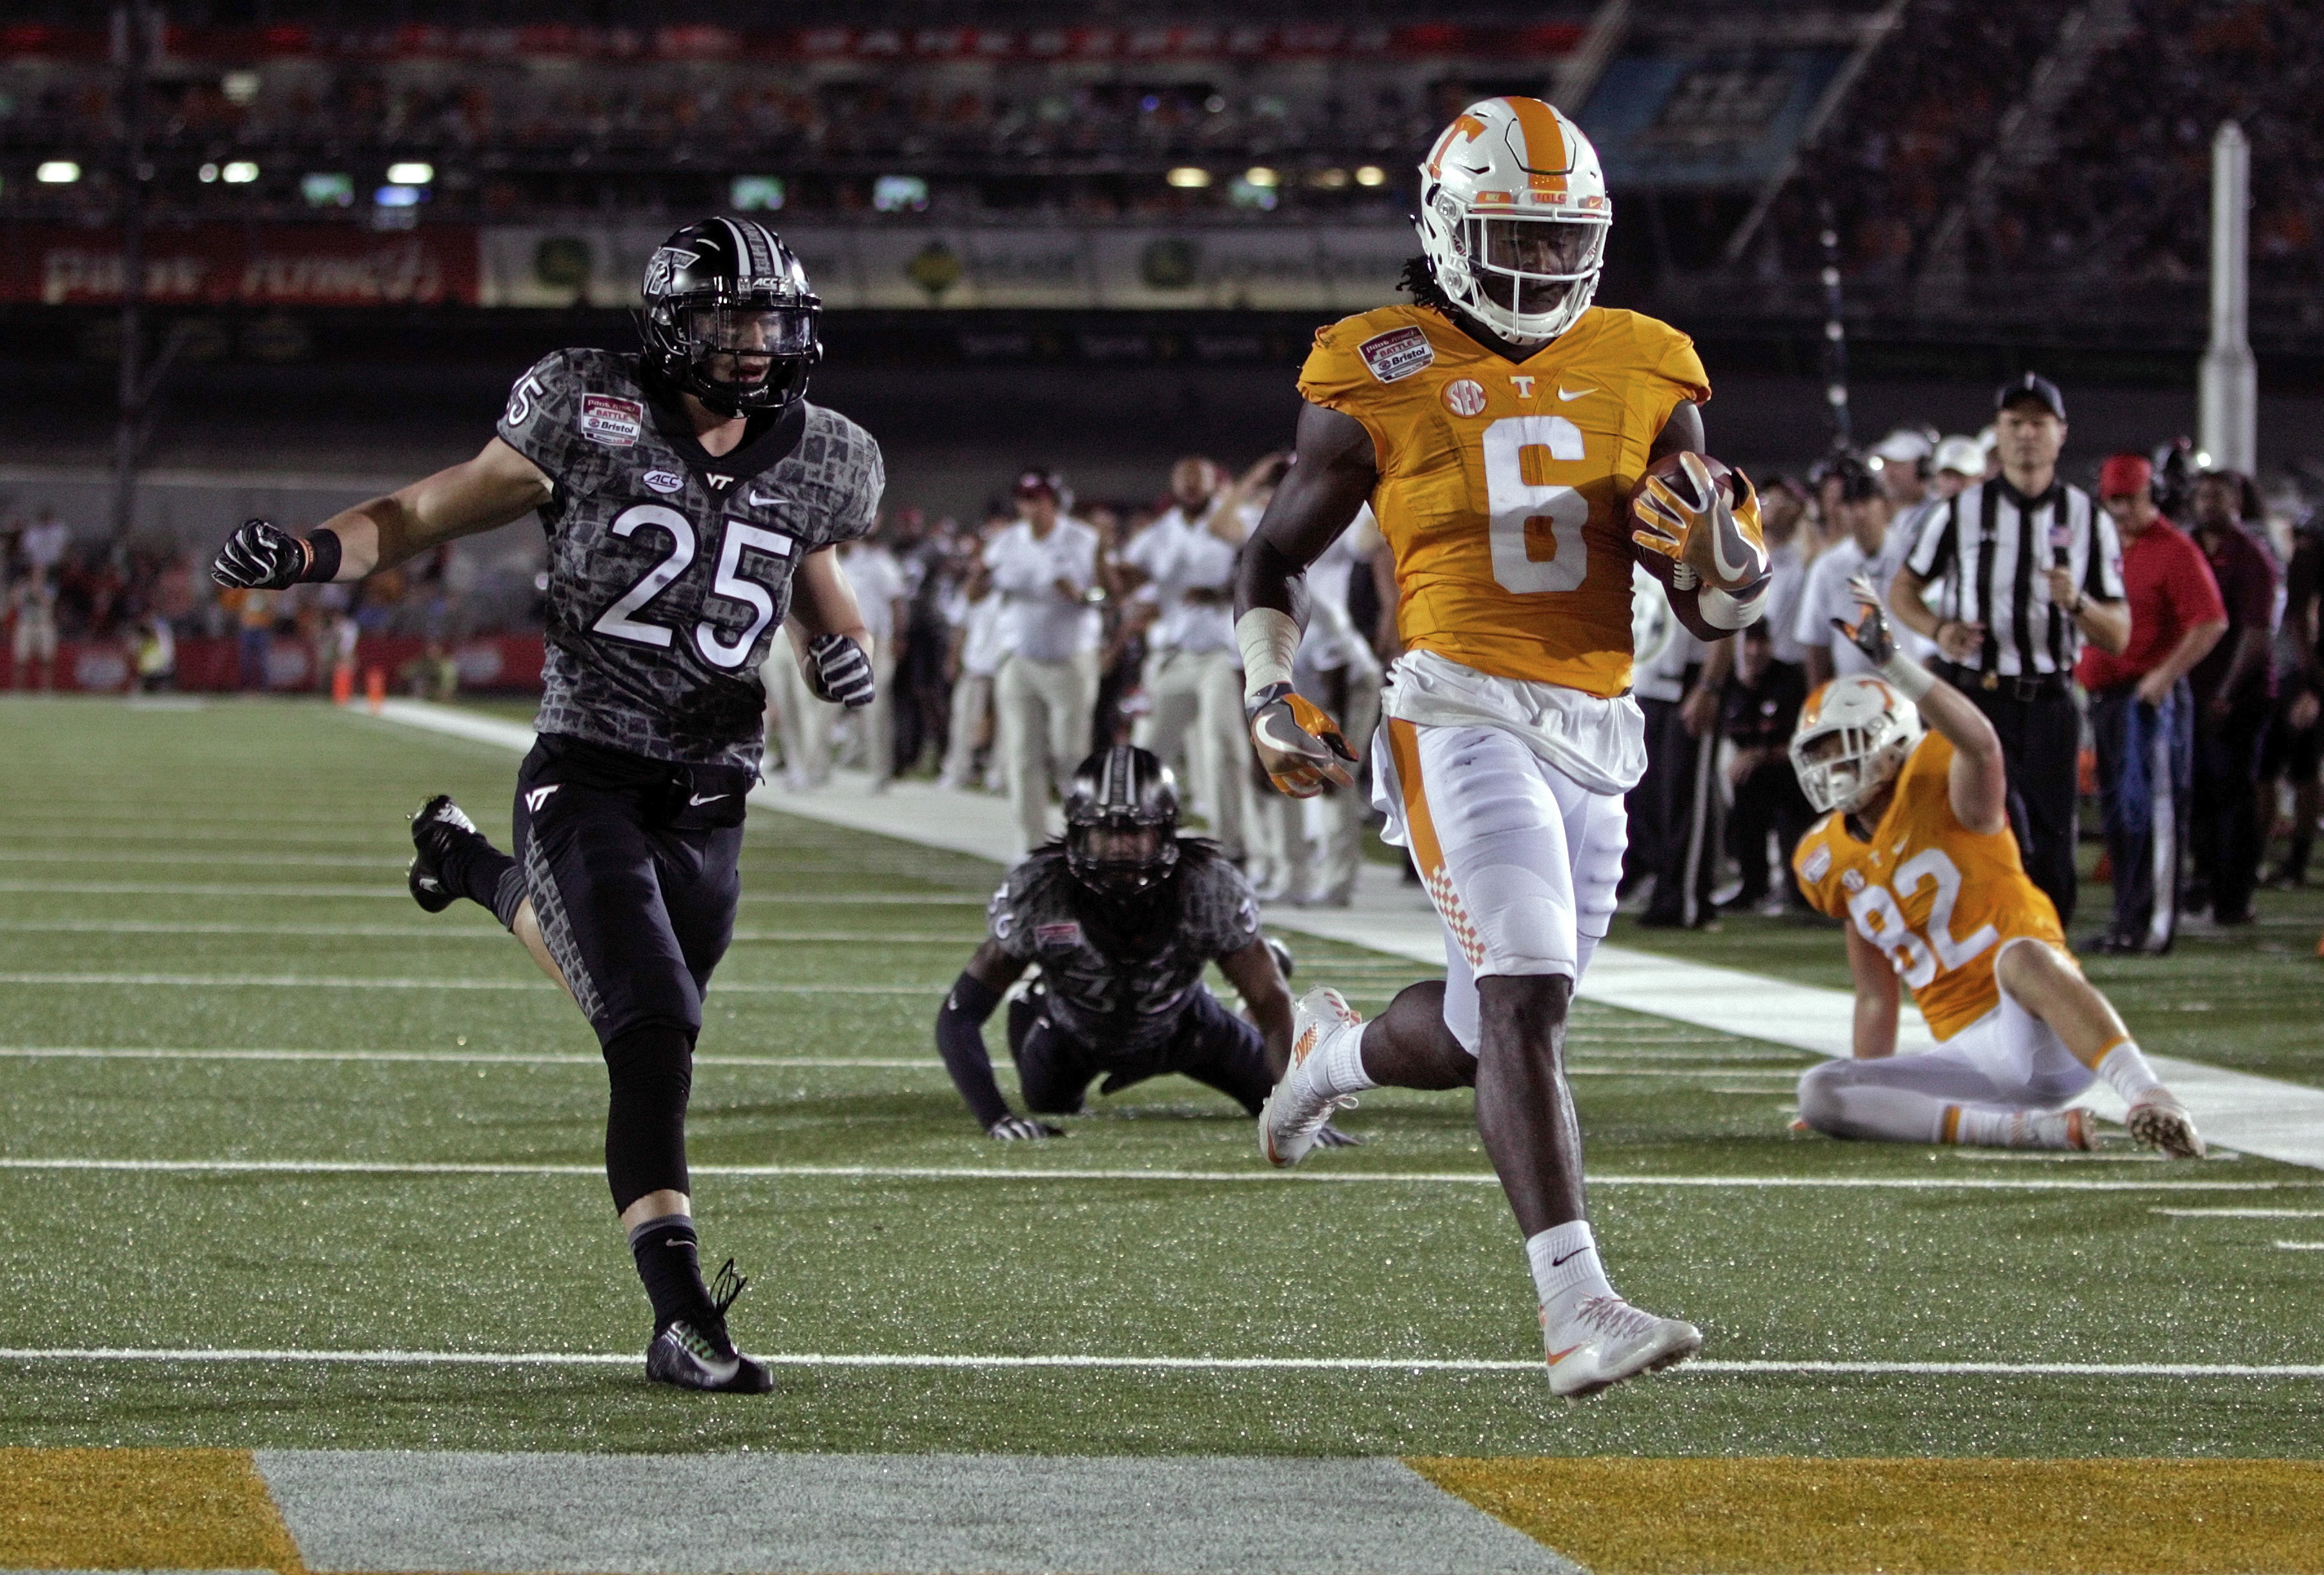 FILE - In this Sept. 10, 2016, file photo, Tennessee running back Alvin Kamara (6) scores a touchdown against Virginia Tech in an NCAA college football game at Bristol Motor Speedway in Bristol, Tenn. Kamara will face his former team Saturday when the nin